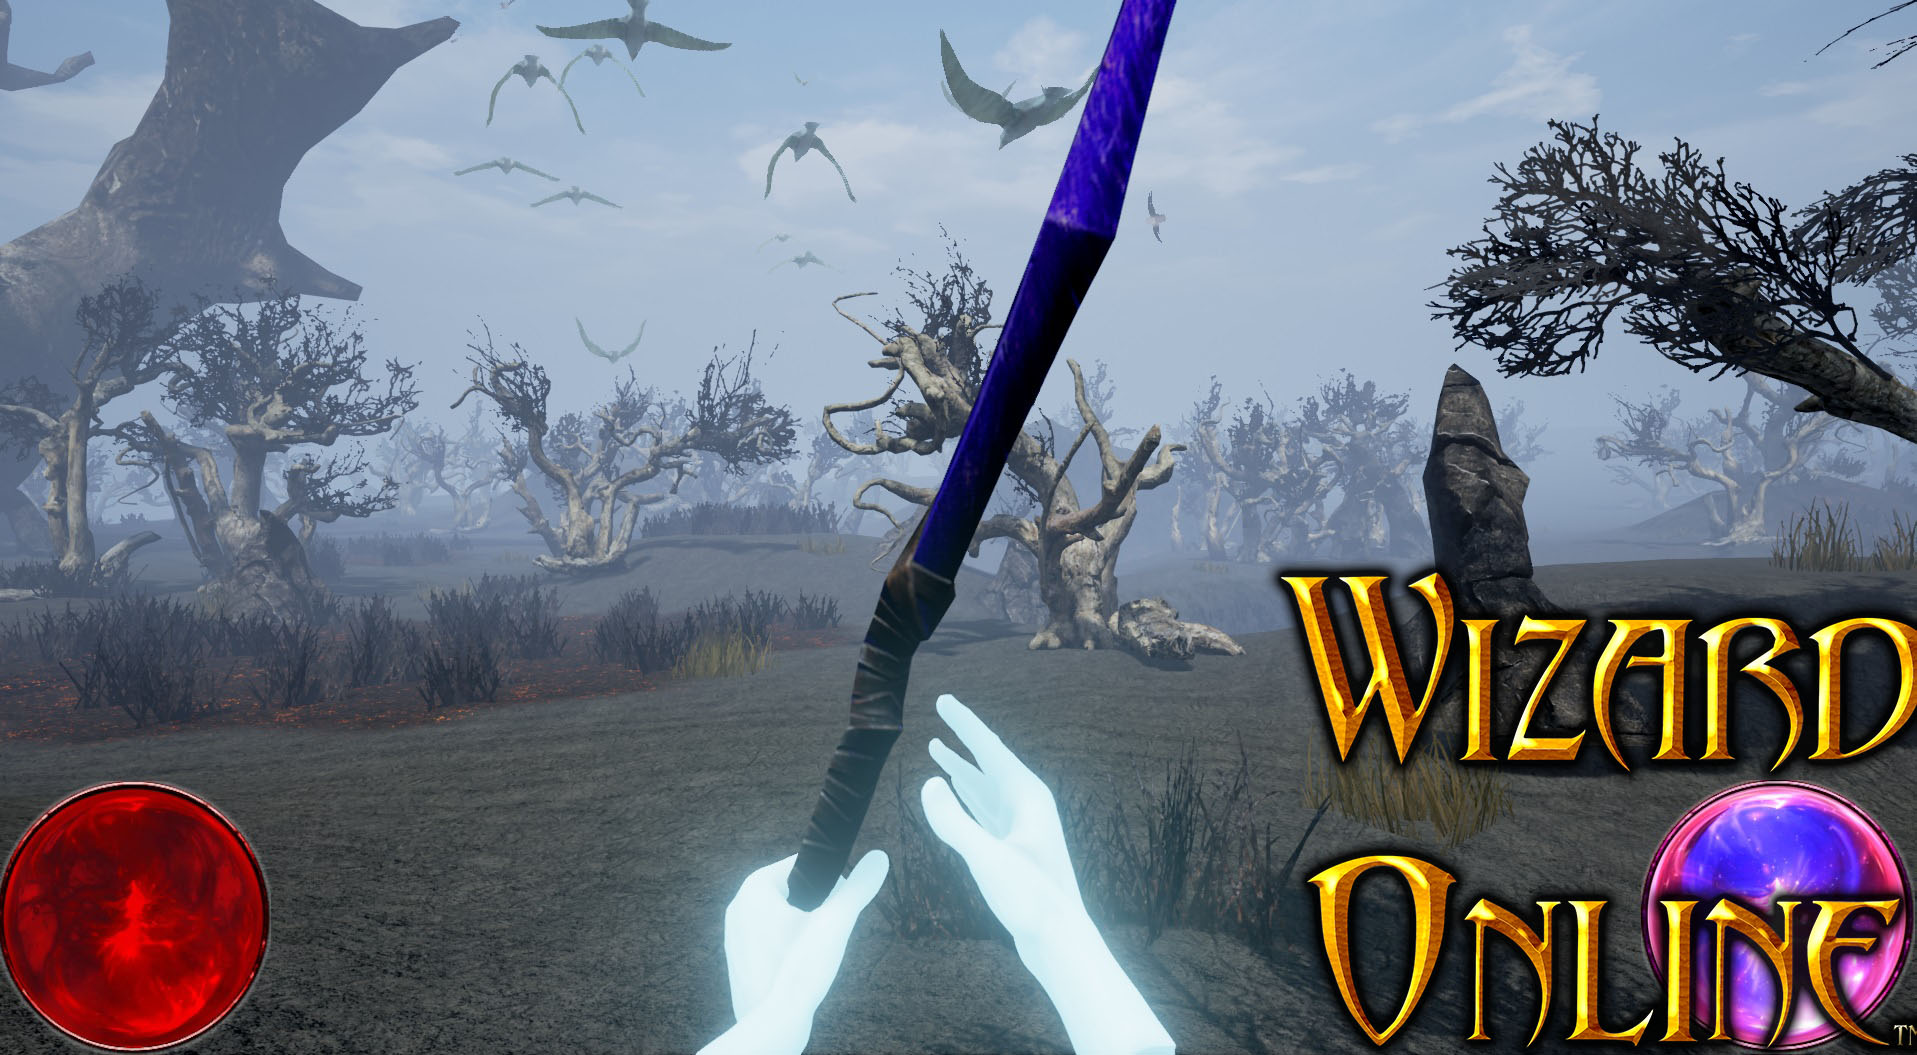 wizard online virtual reality open world game image indie db